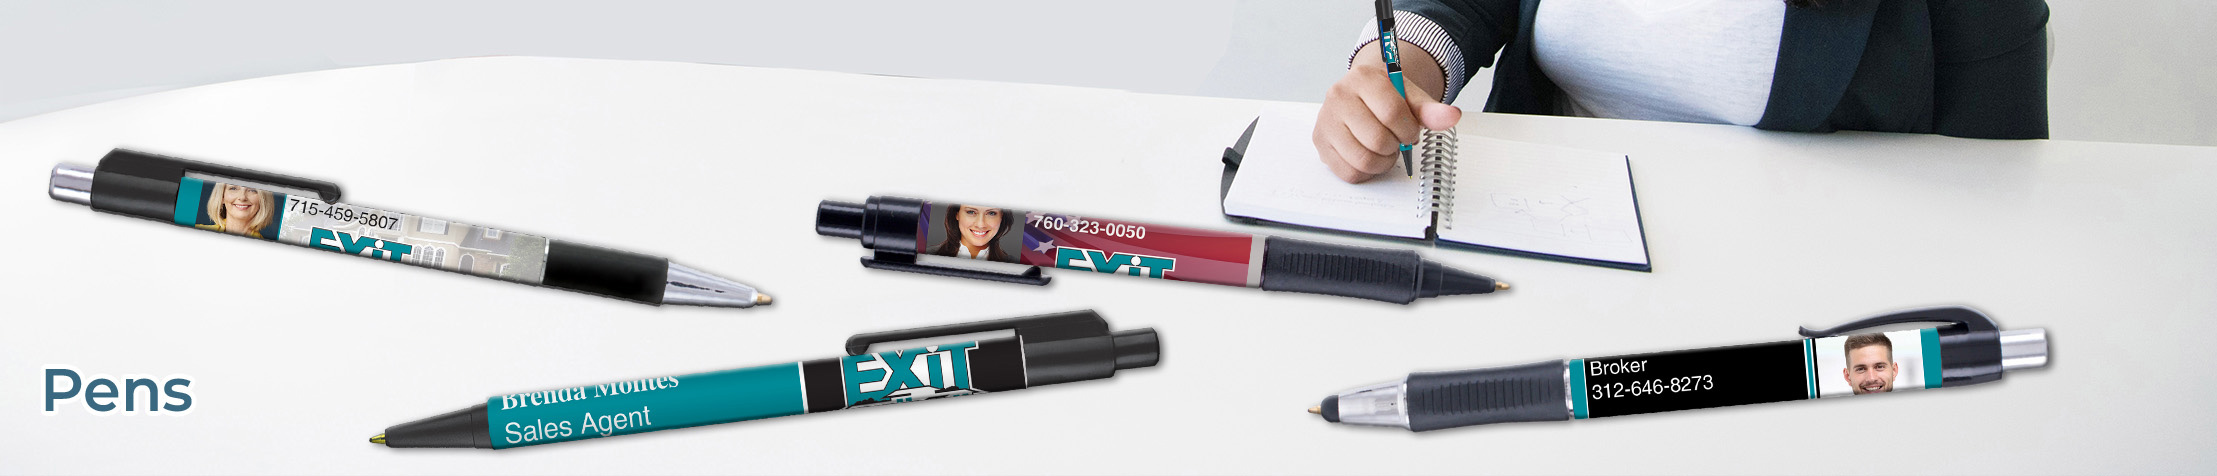 Exit Realty Real Estate Pens - Exit Realty approved vendor personalized realtor promotional products | BestPrintBuy.com